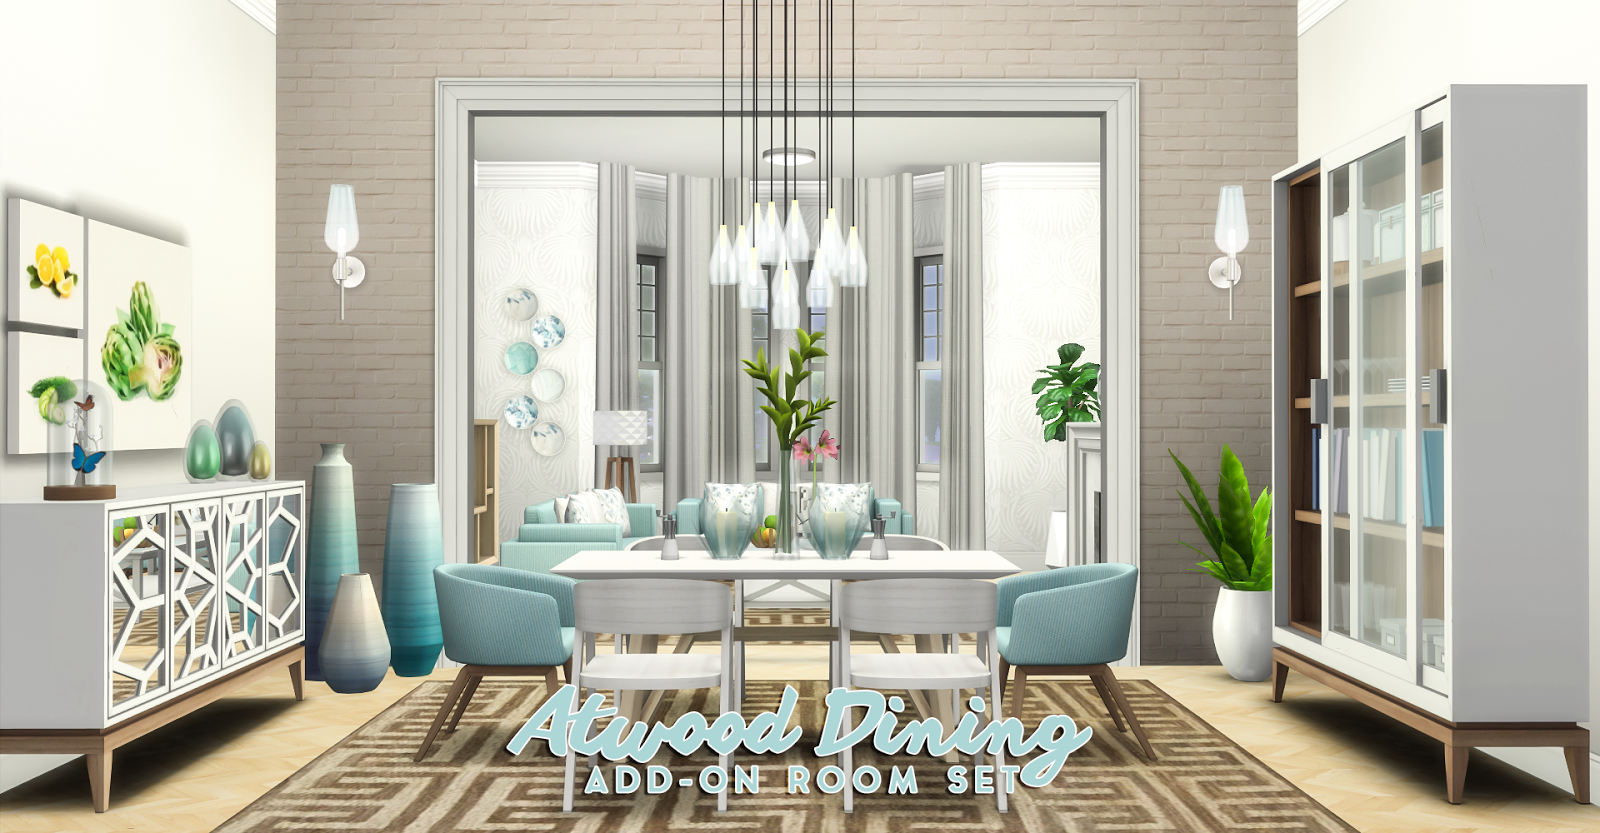 Atwood Dining Addons By Peacemaker Ic Liquid Sims